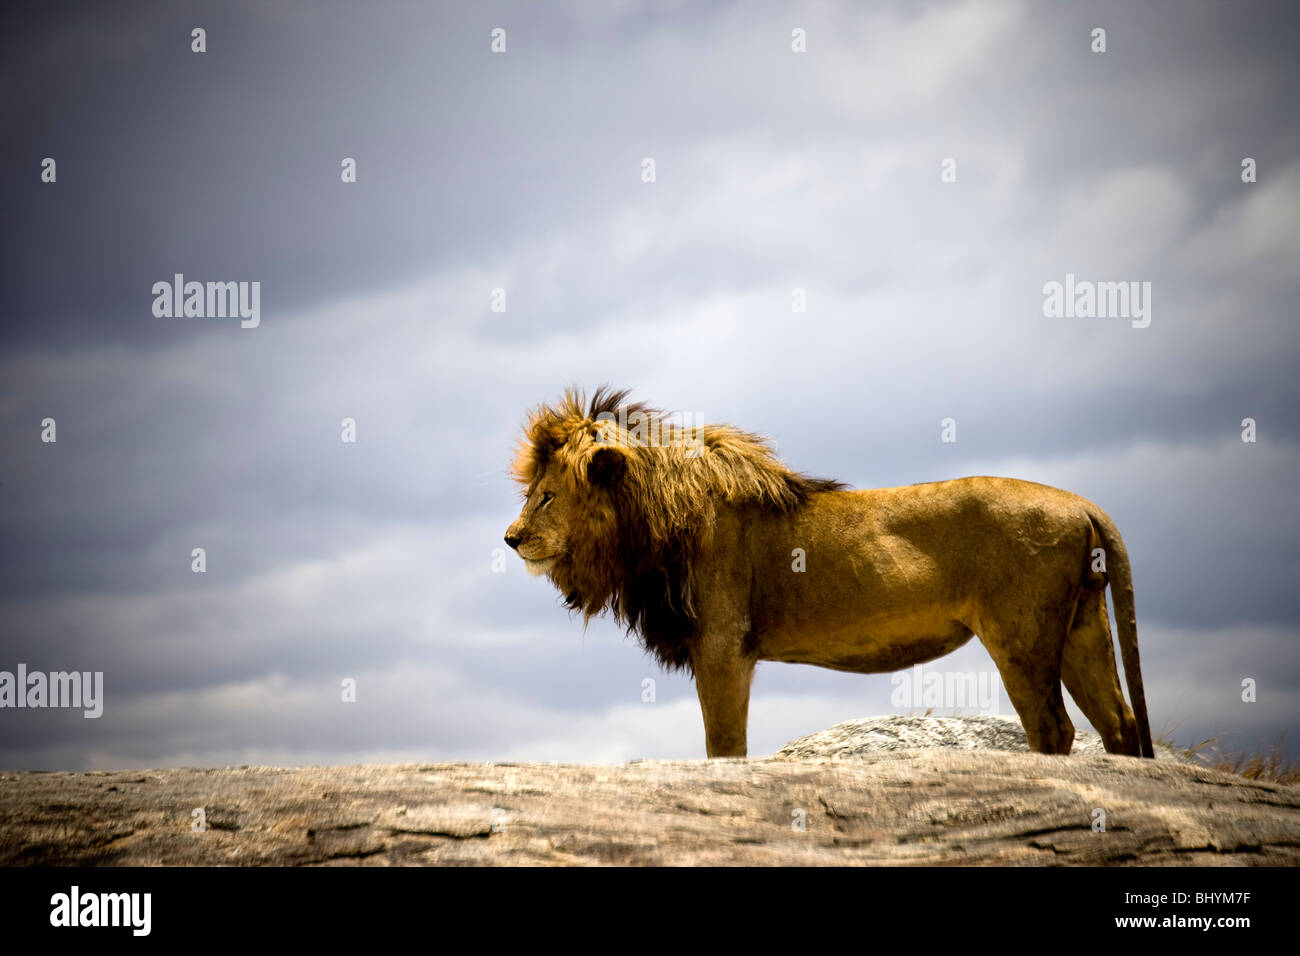 Male lion, Serengeti NP, Tanzania, East Africa - Stock Image